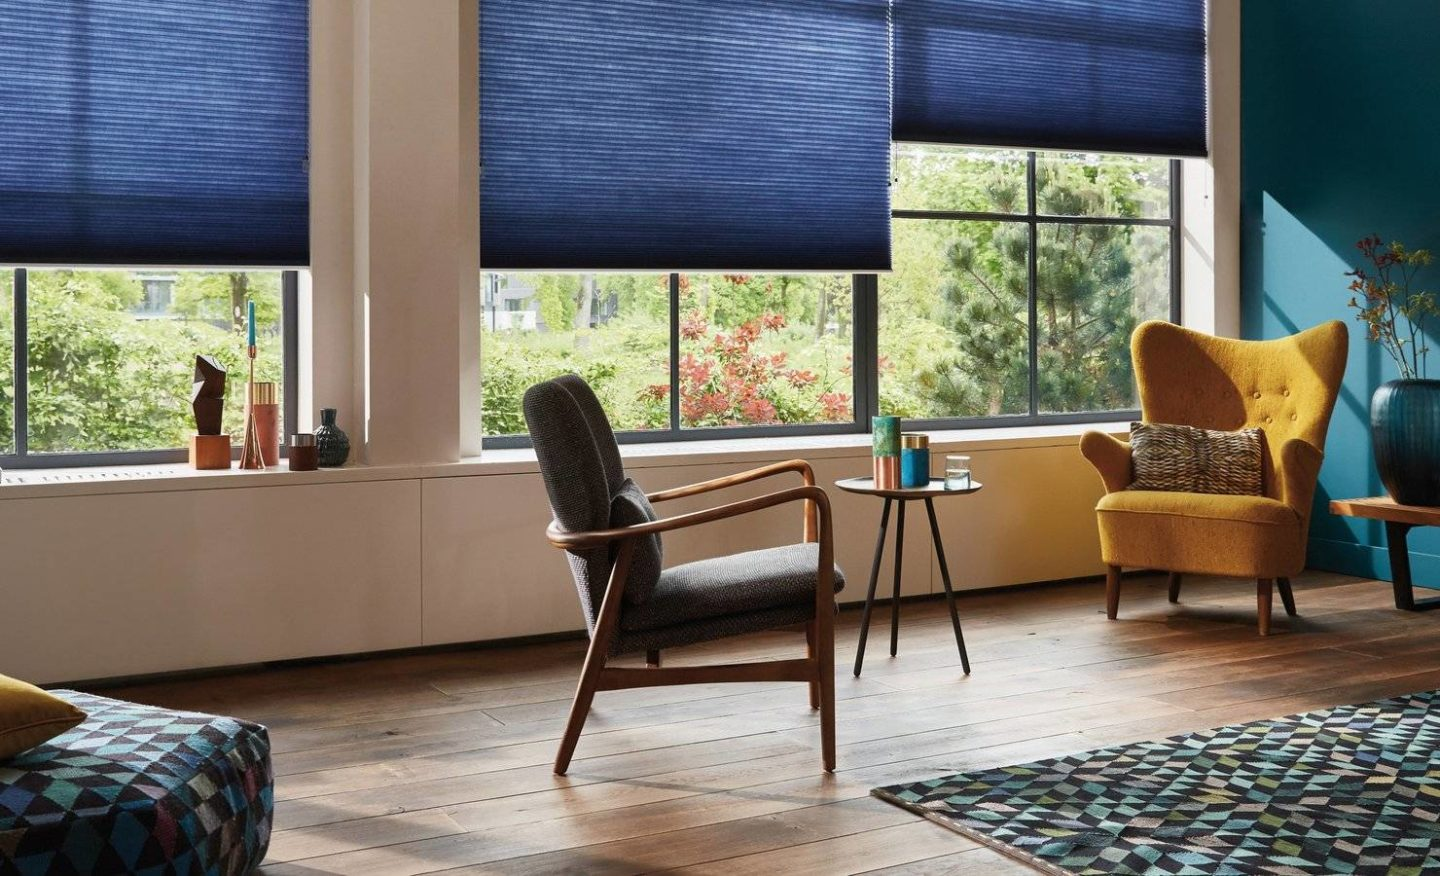 7 reasons why blinds are best for a family home